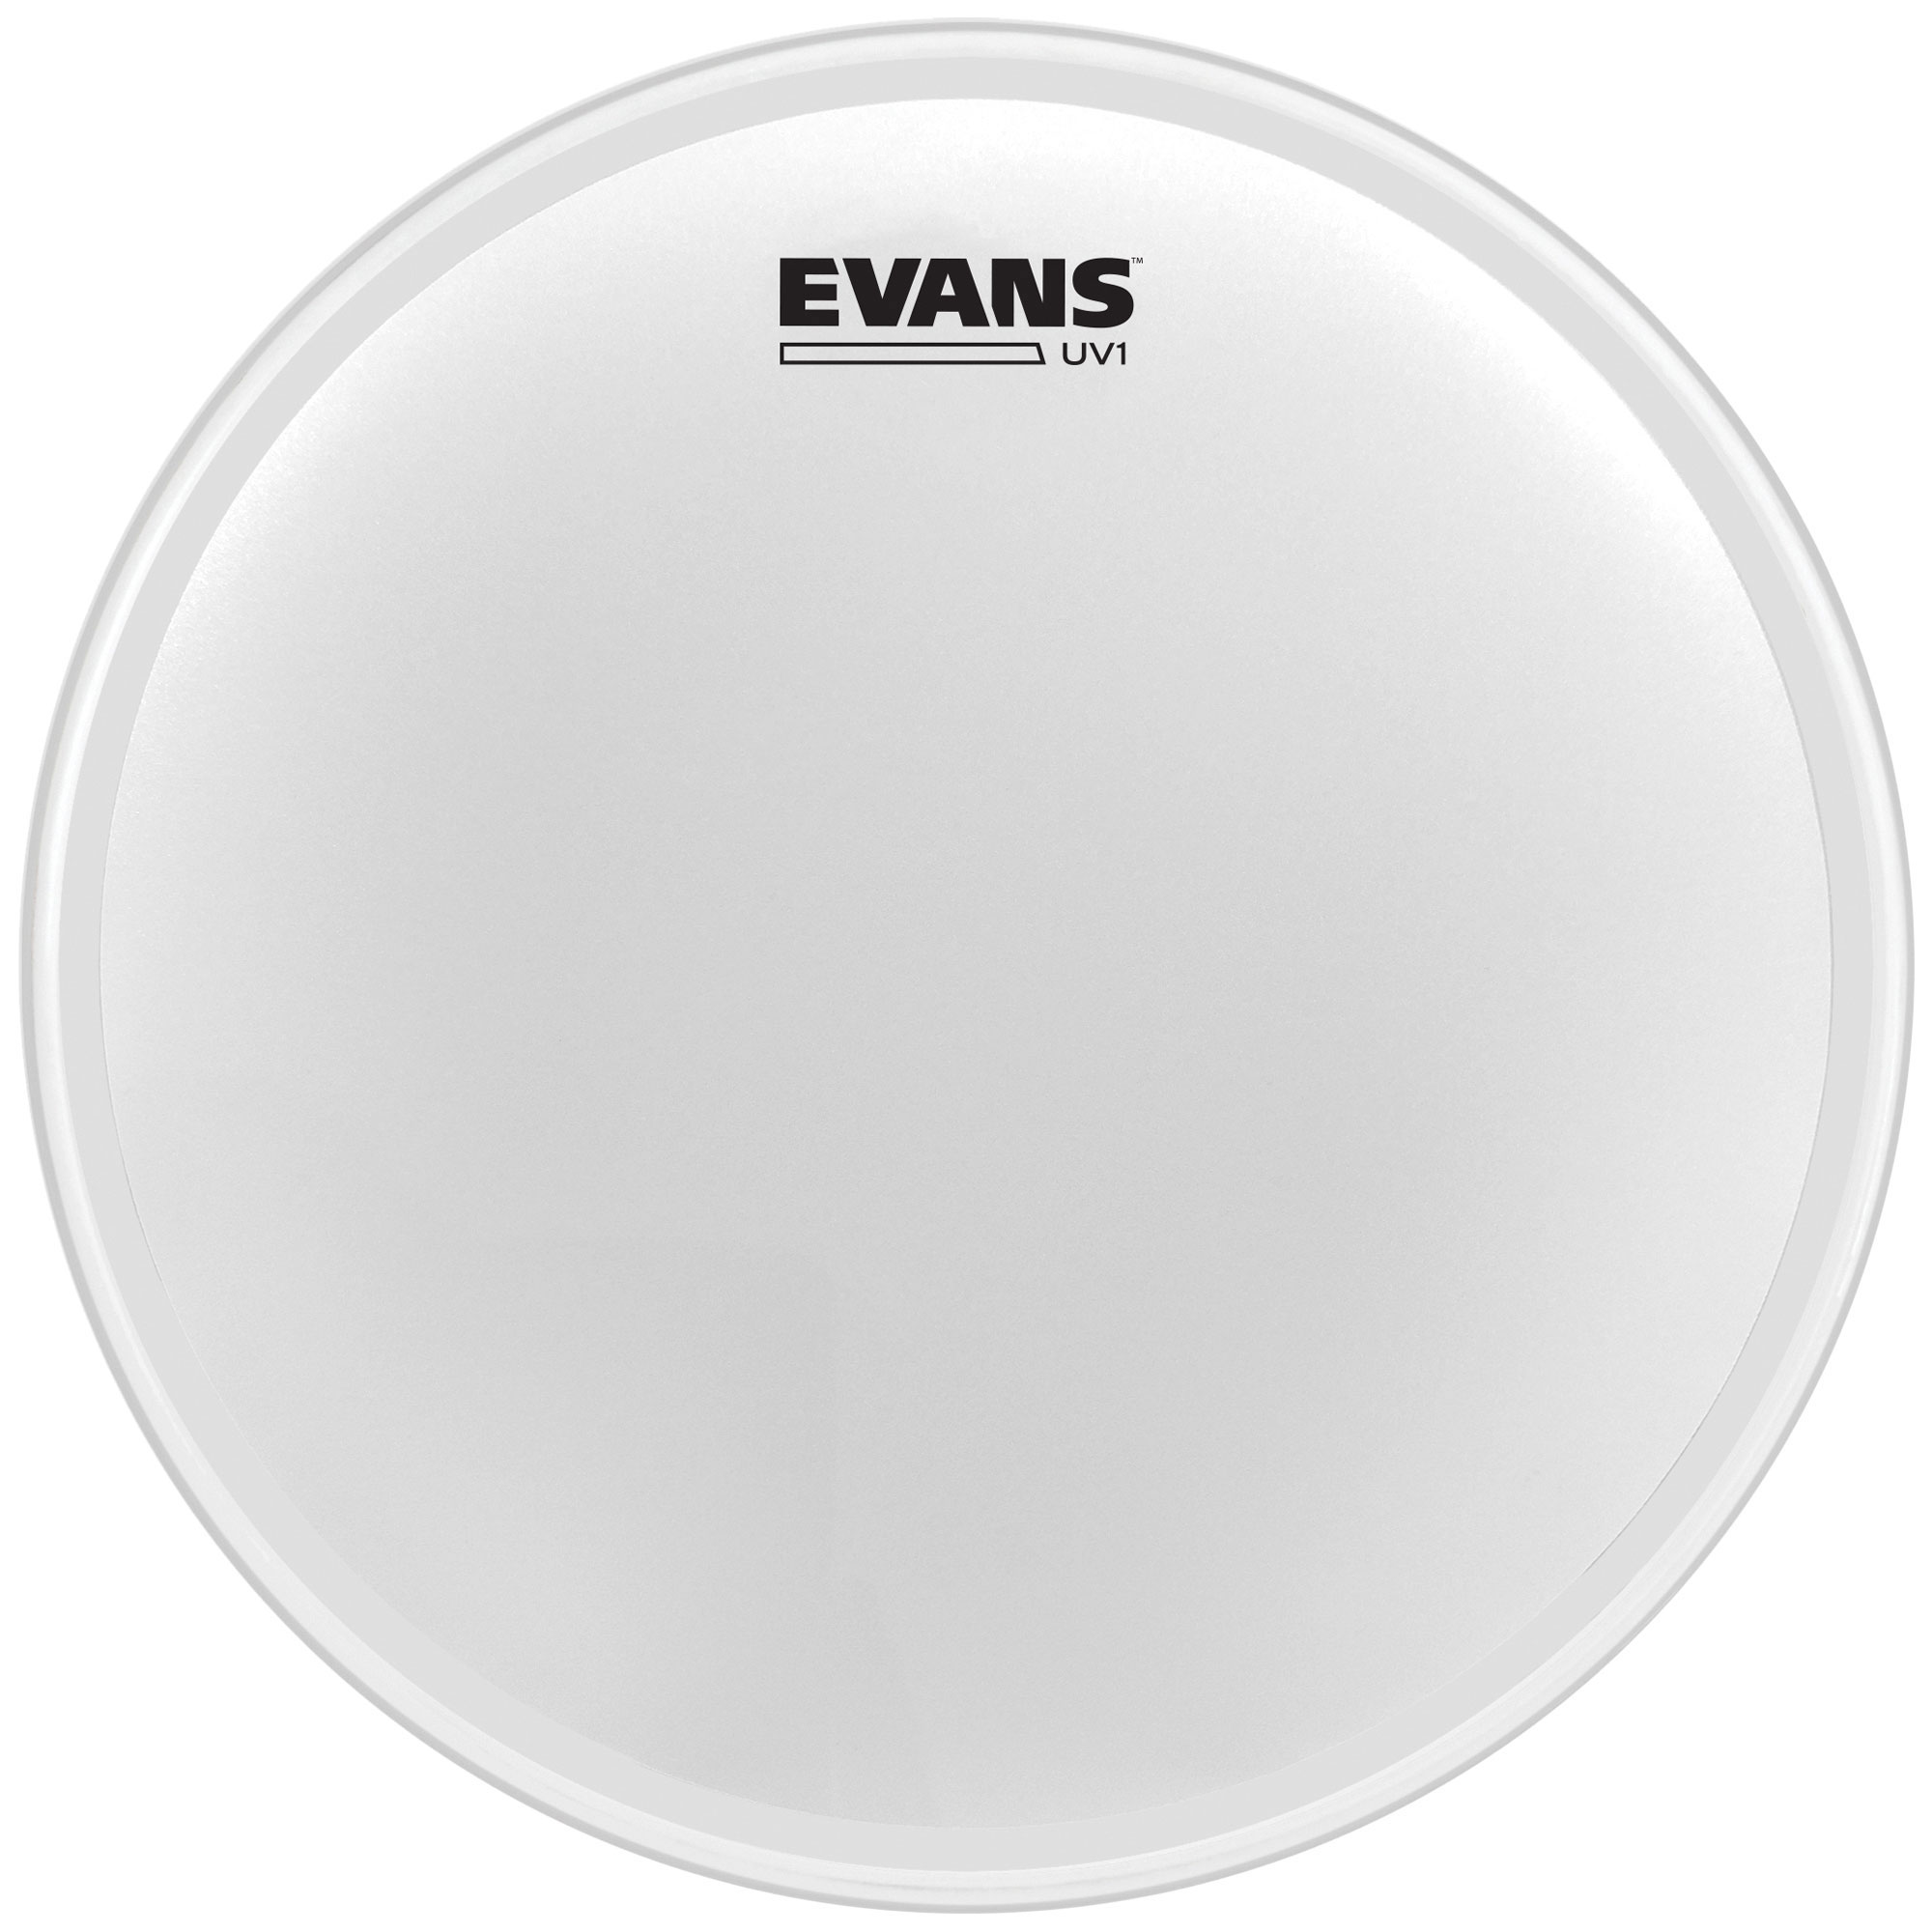 "Evans 12"" UV1 Coated Drum Head"